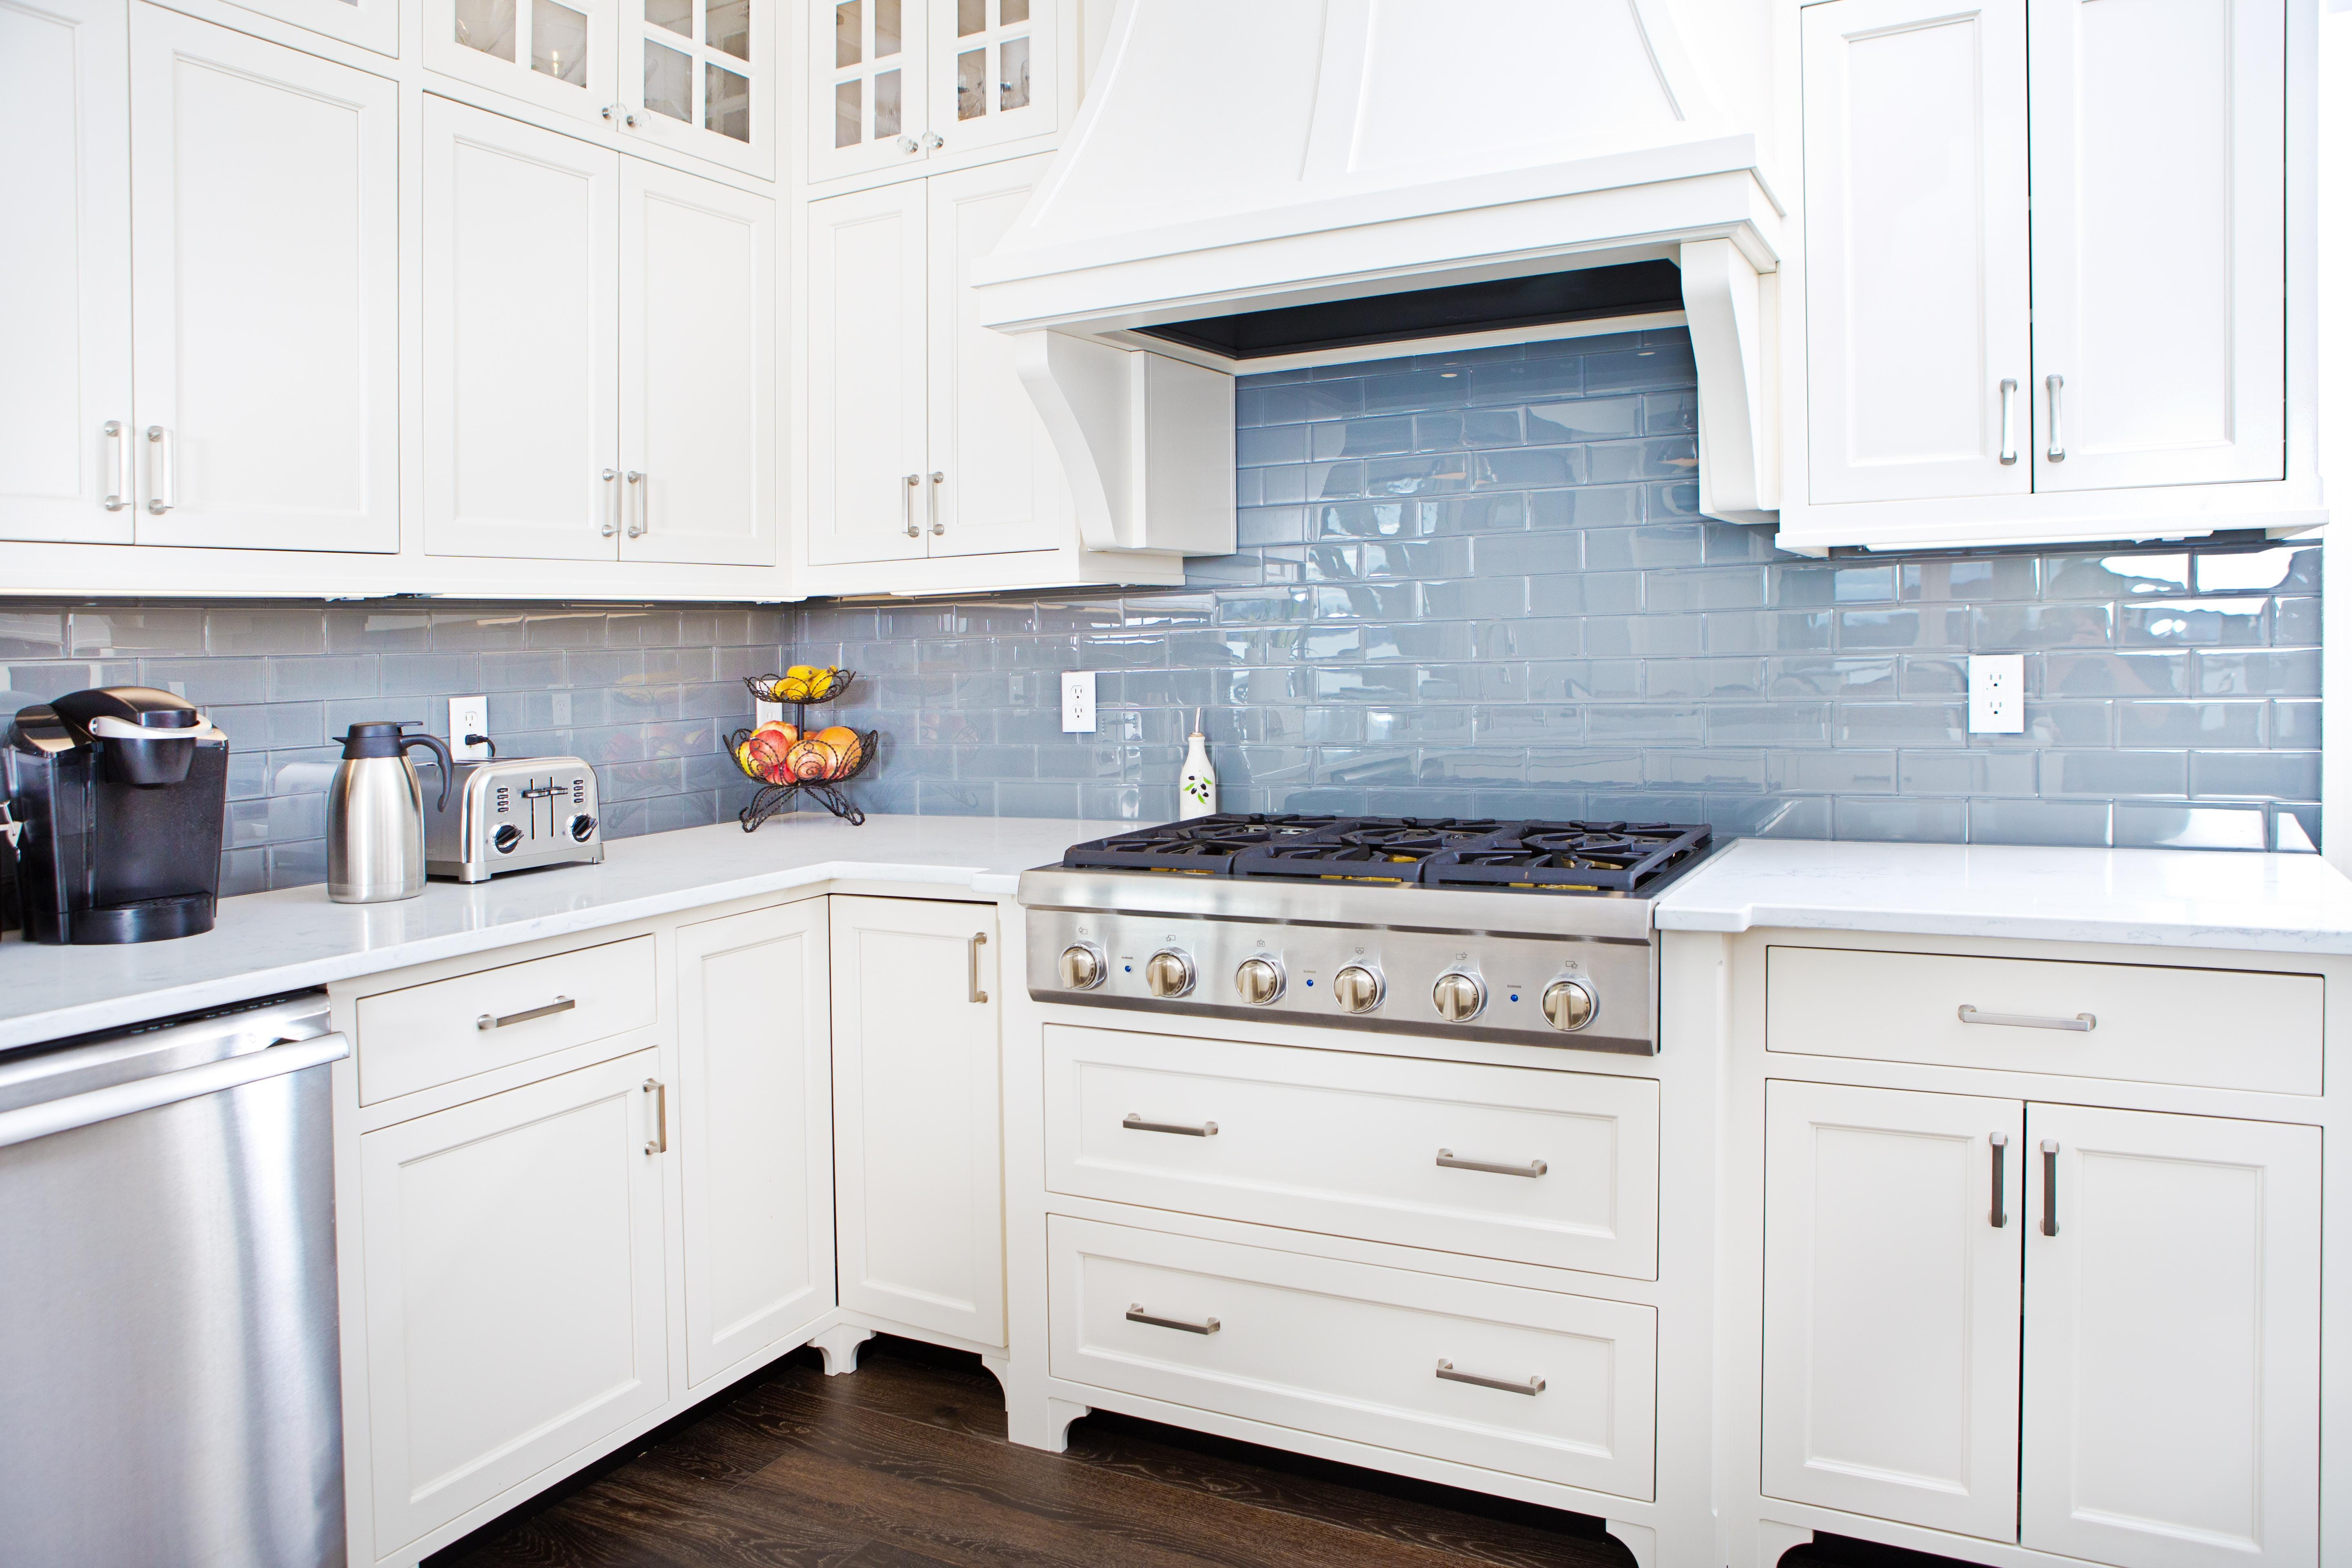 how to revive old kitchen cabinets on a budget rh shreveporttimes com old kitchen cabinets makeover old kitchen cabinet hinges